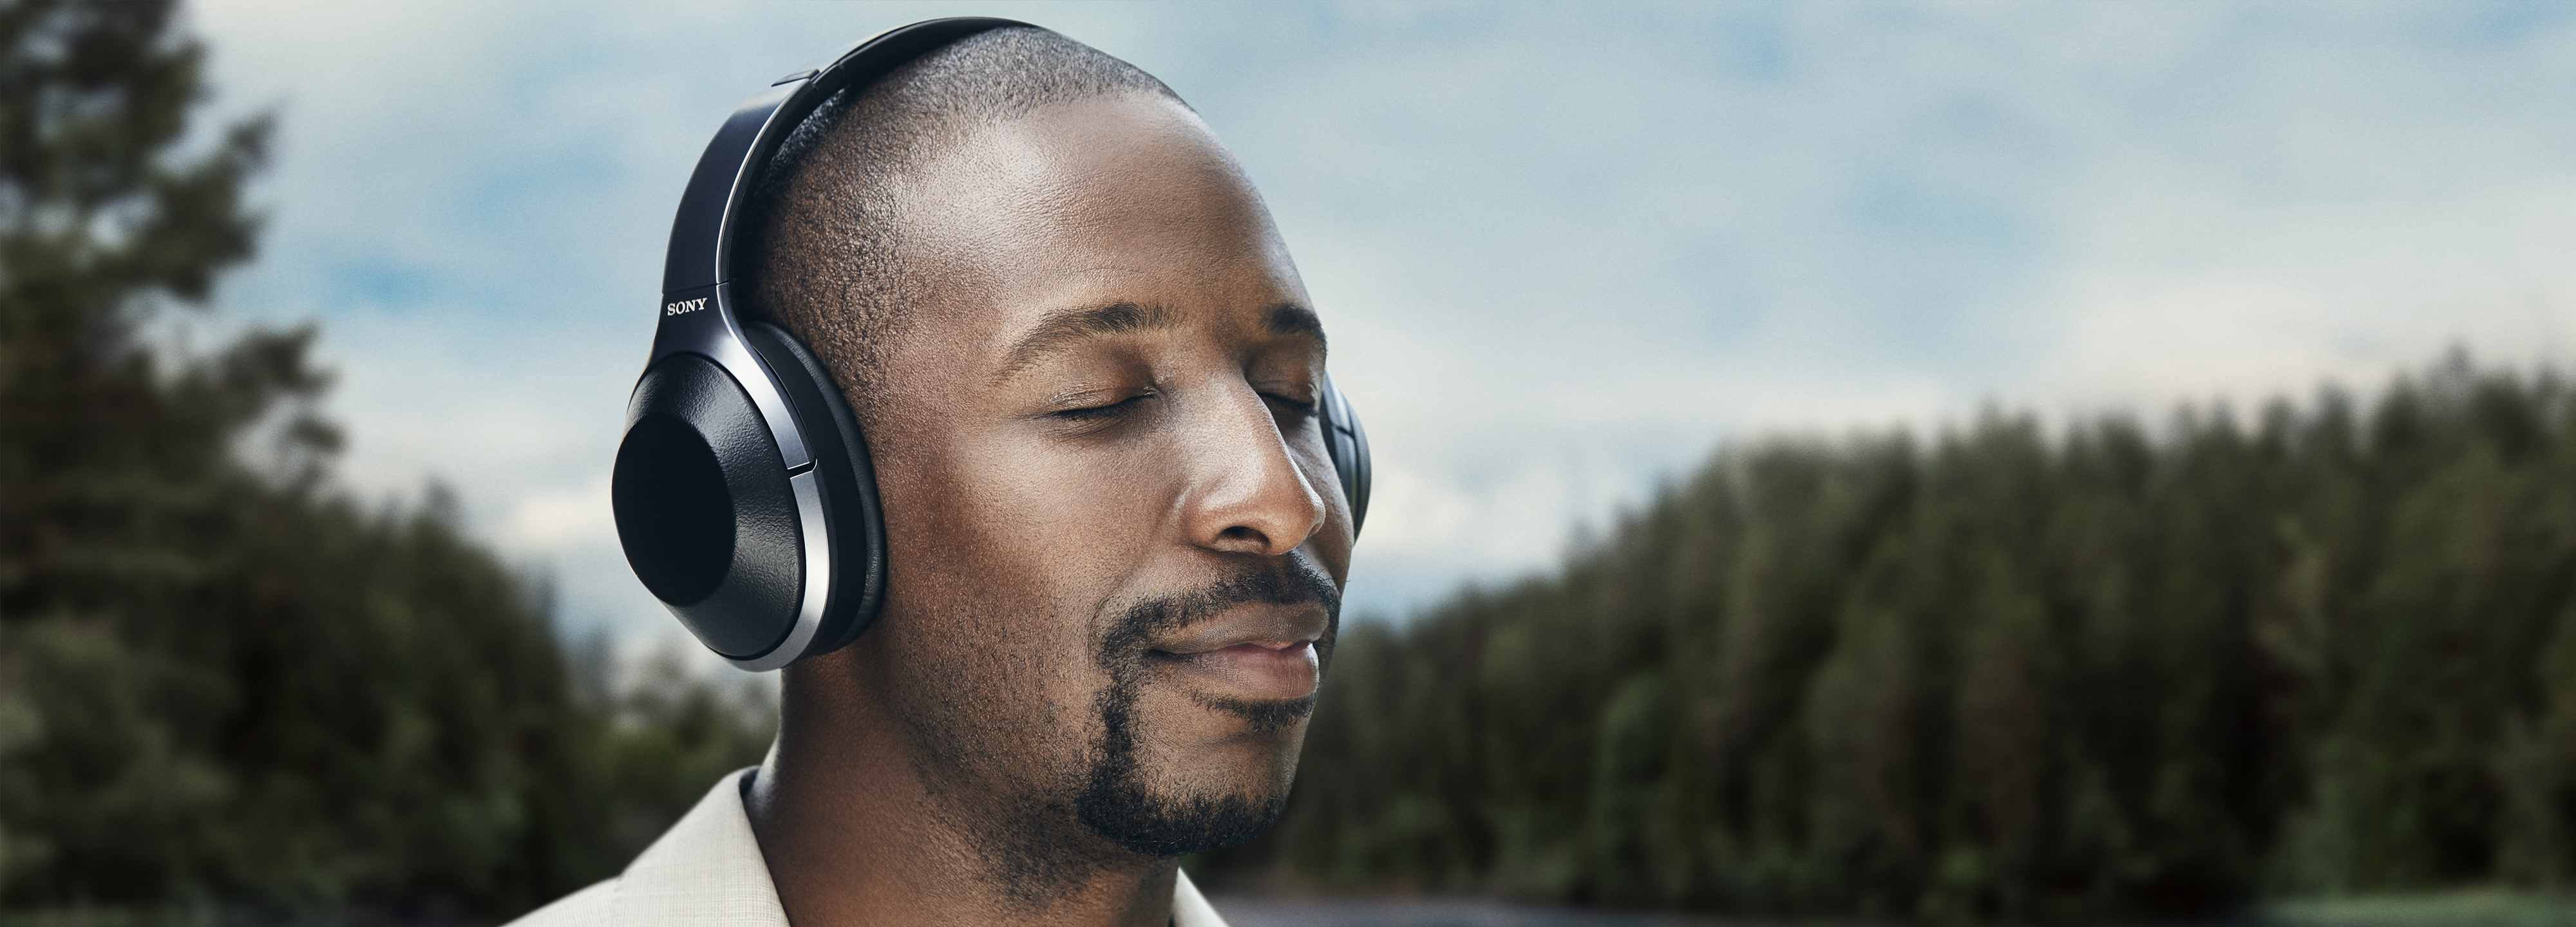 Sony WH-1000XM3 headphones to launch at IFA 2018 - Sony